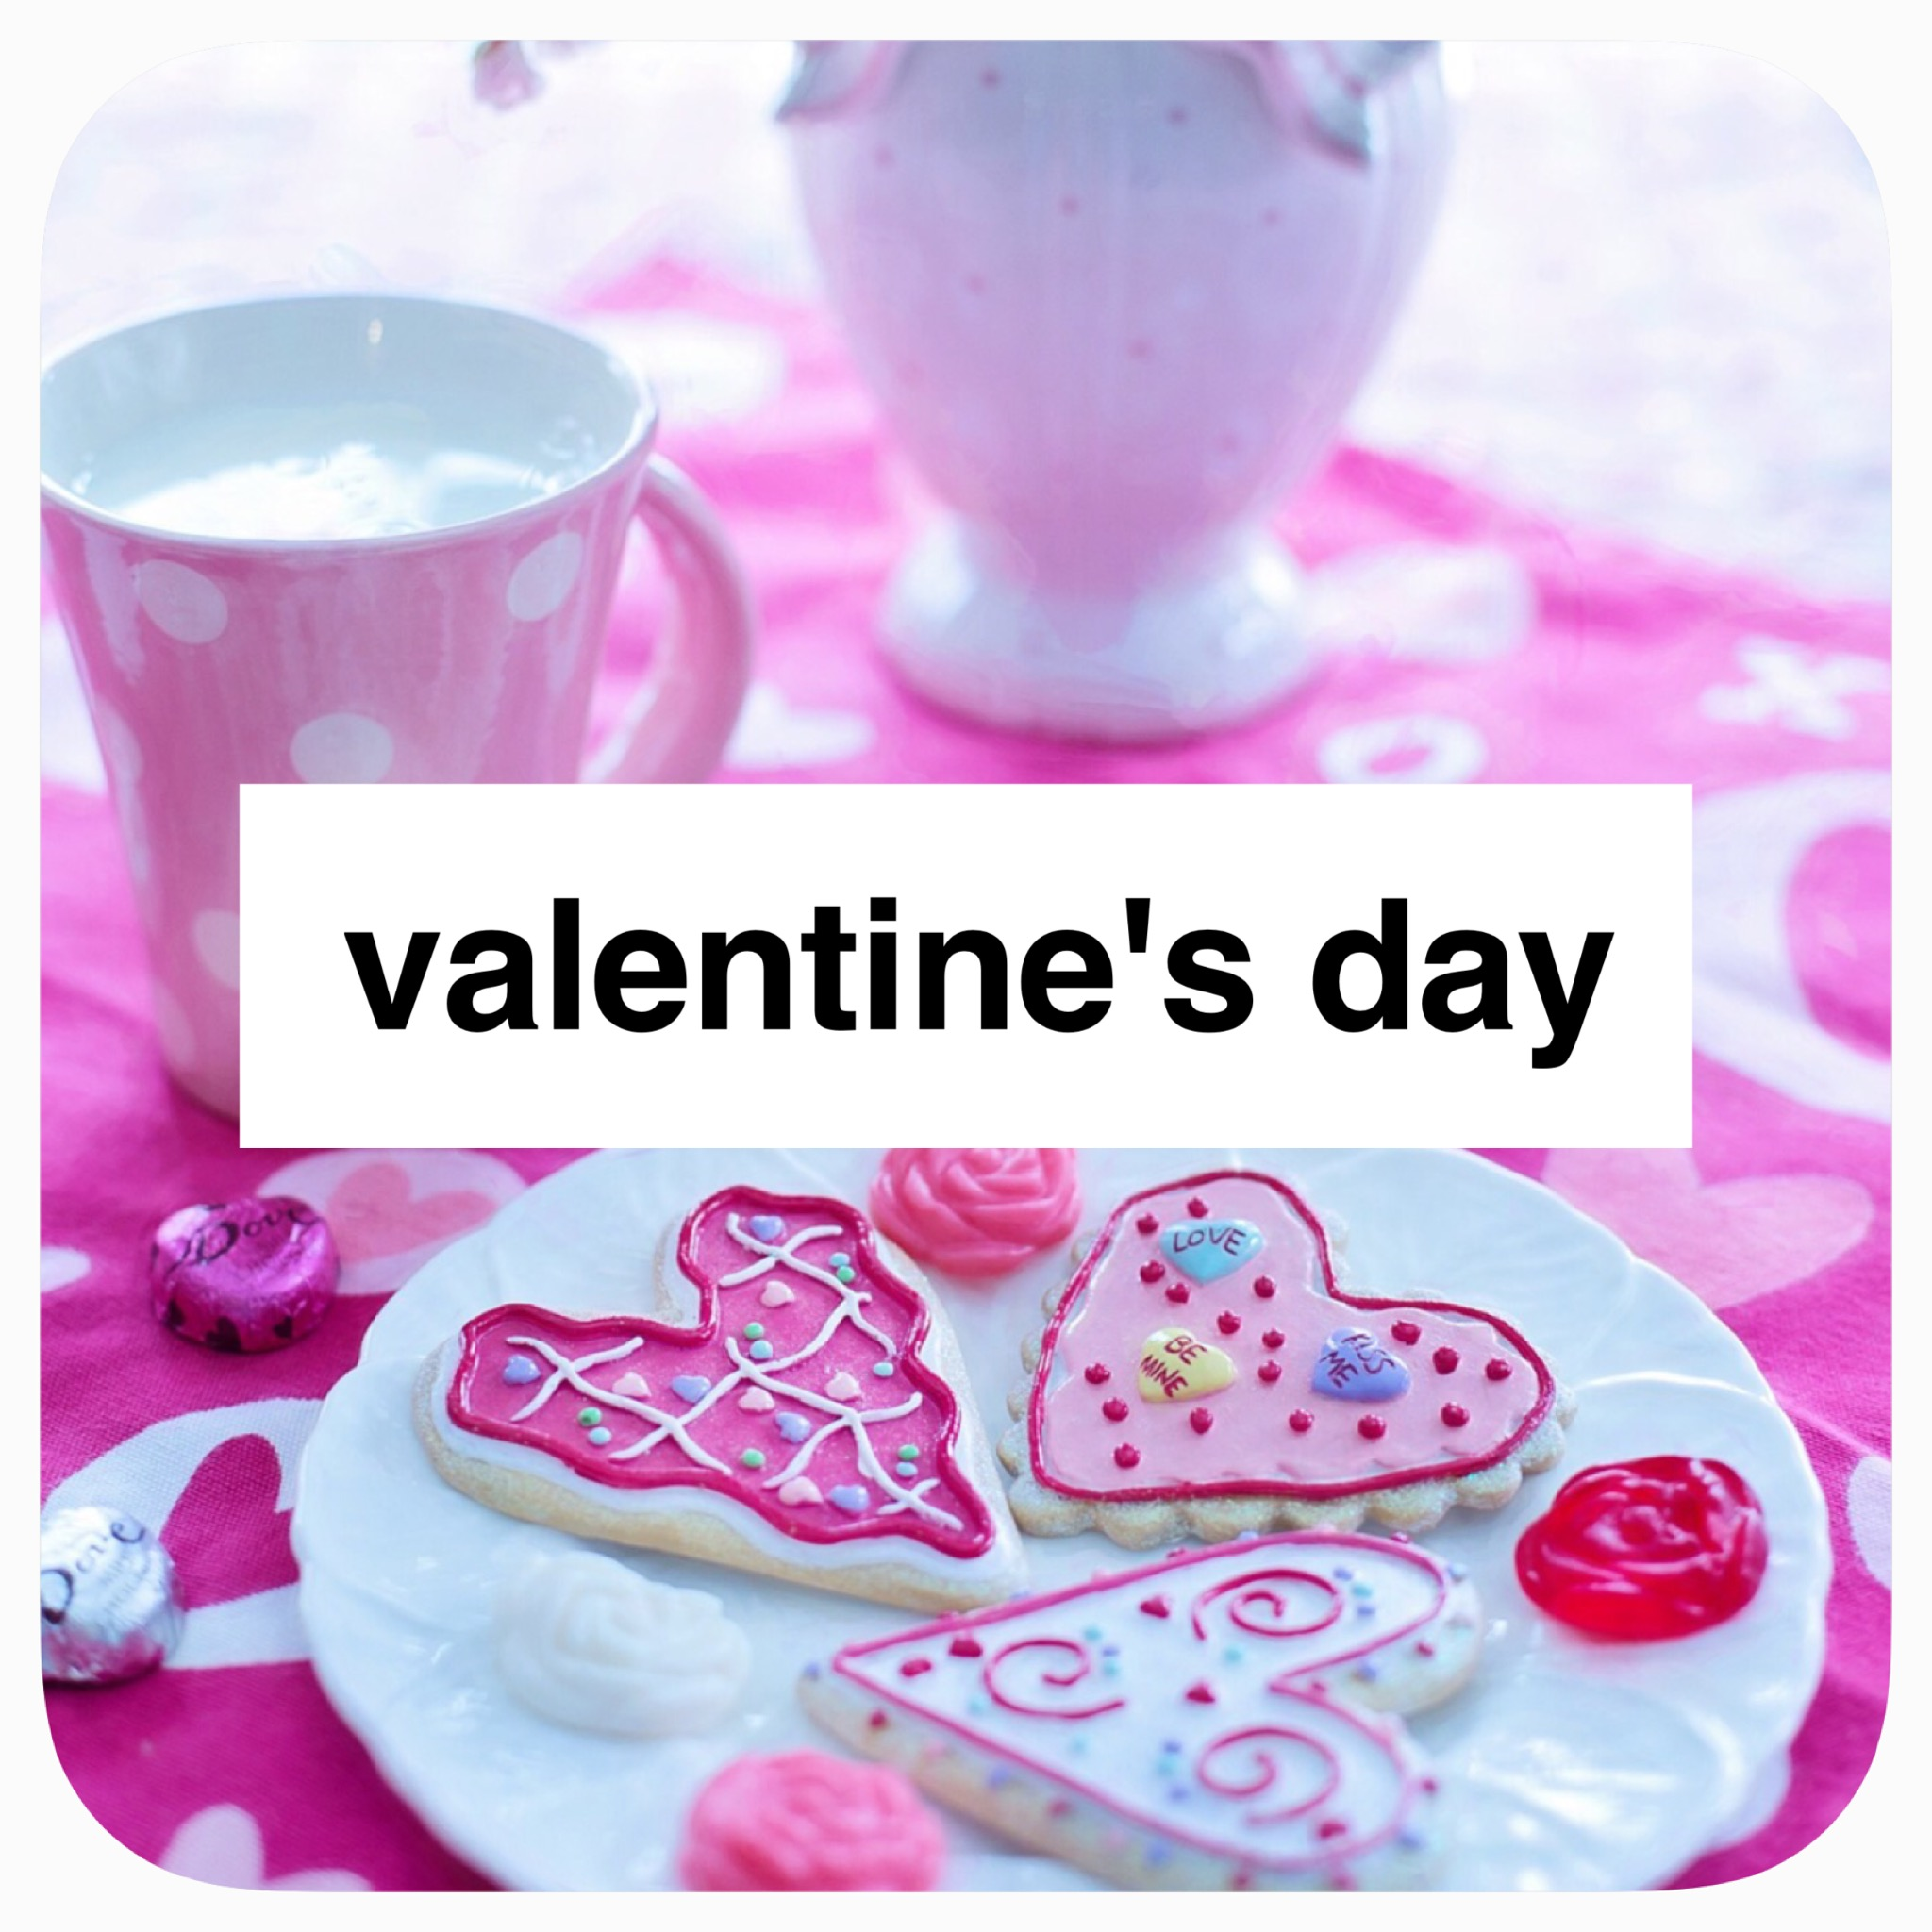 Valentine's Day crafts, DIY, children's activities from @How2playtoday. Visit online at www.how2play.today for more fun ideas.